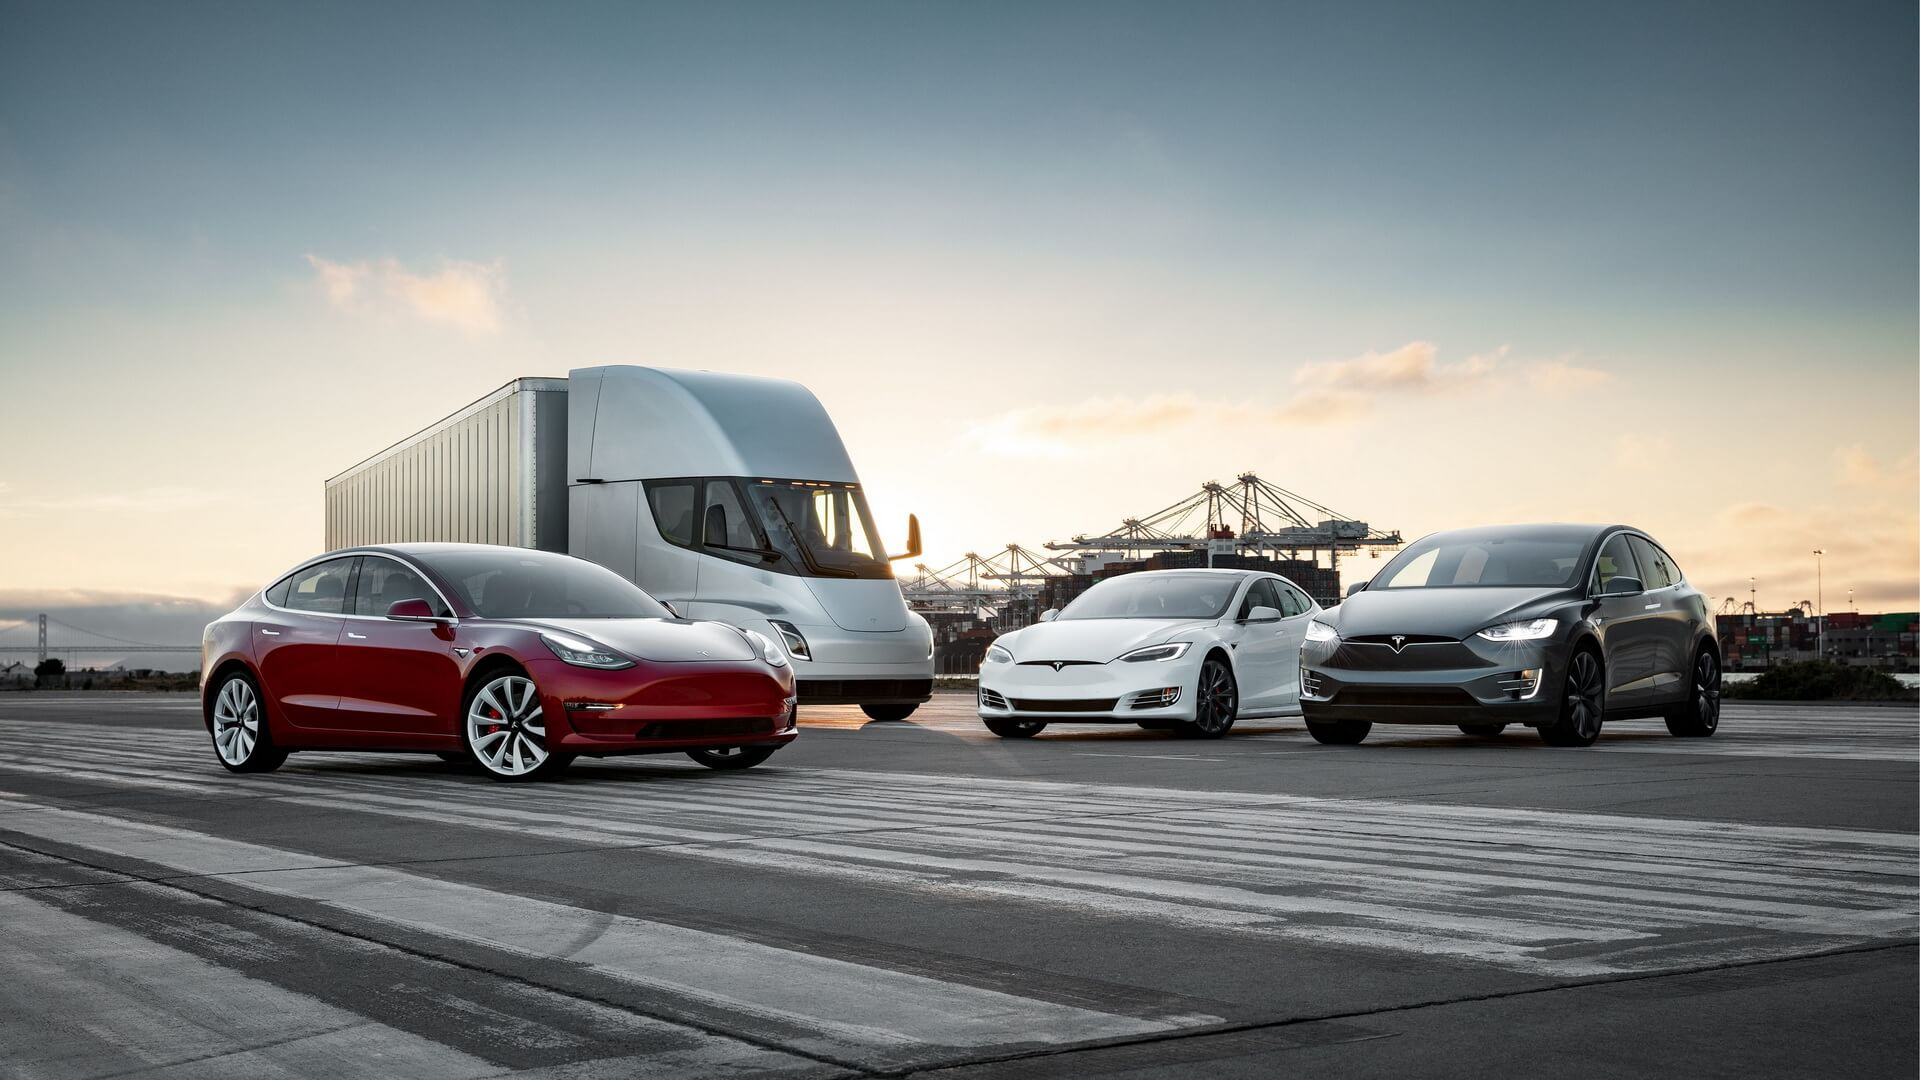 «SX3Semi-Family» - Tesla представила фотографию всех электромобилей